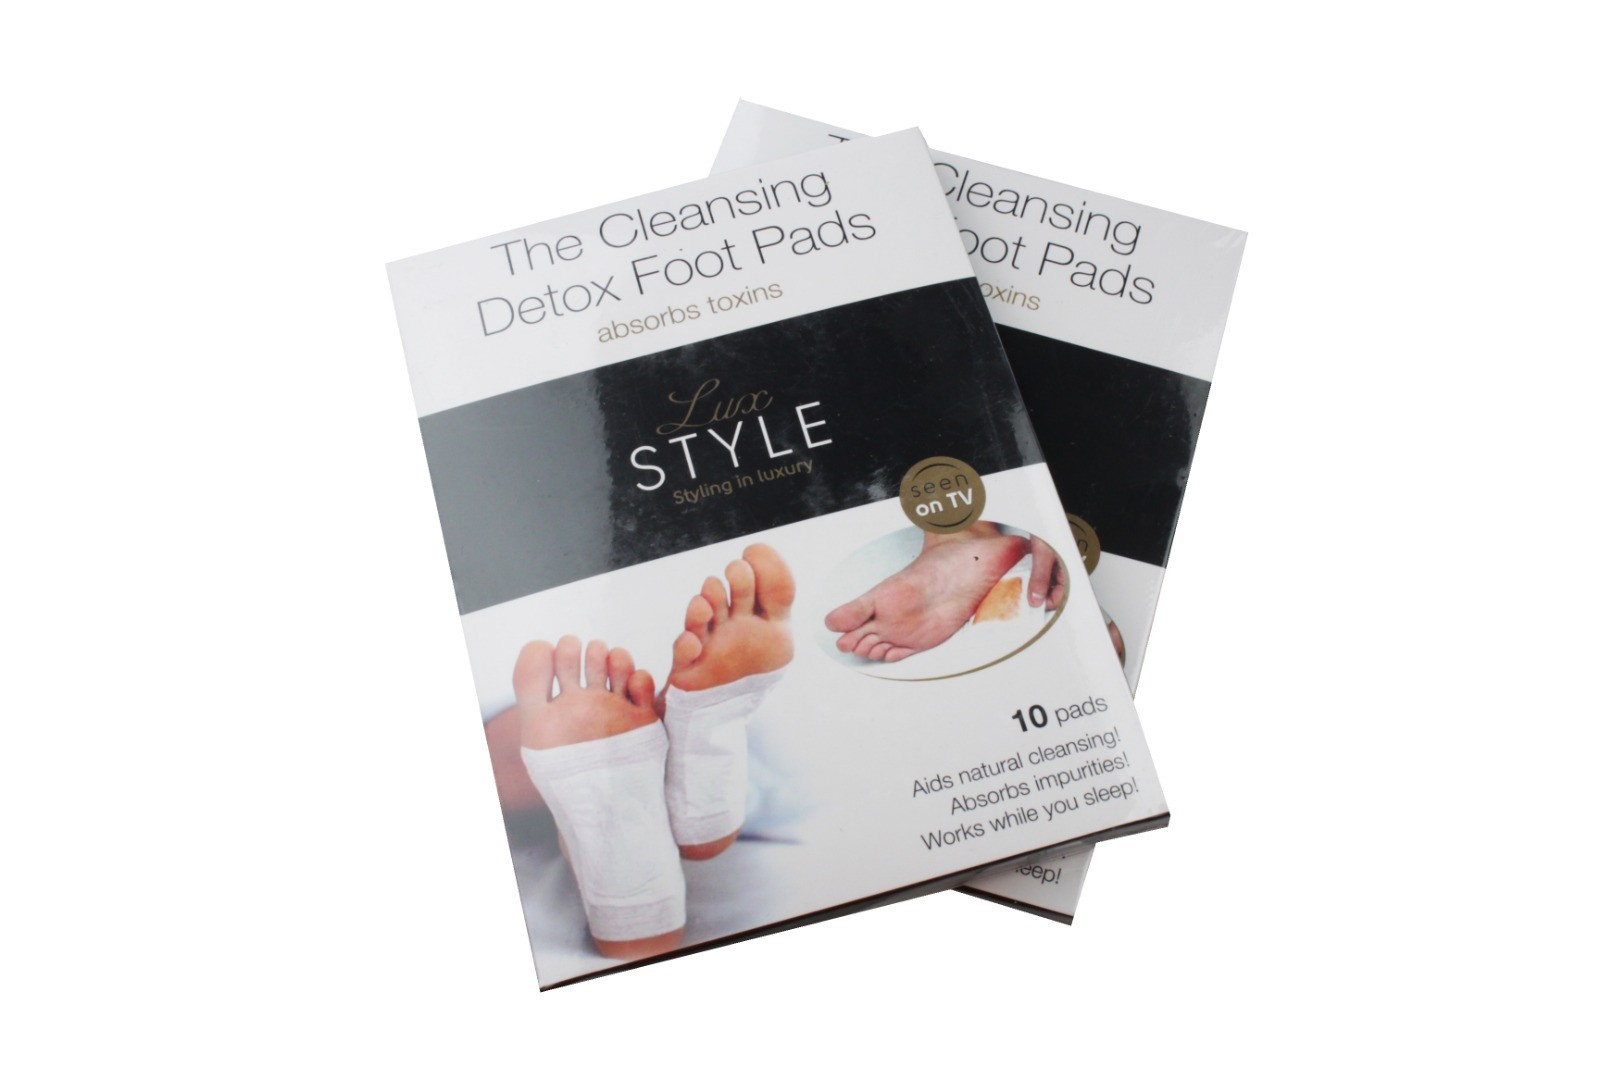 Cleansing Detox Foot Pads, 2 Est. Original Retail €5,980, Tanna, DE